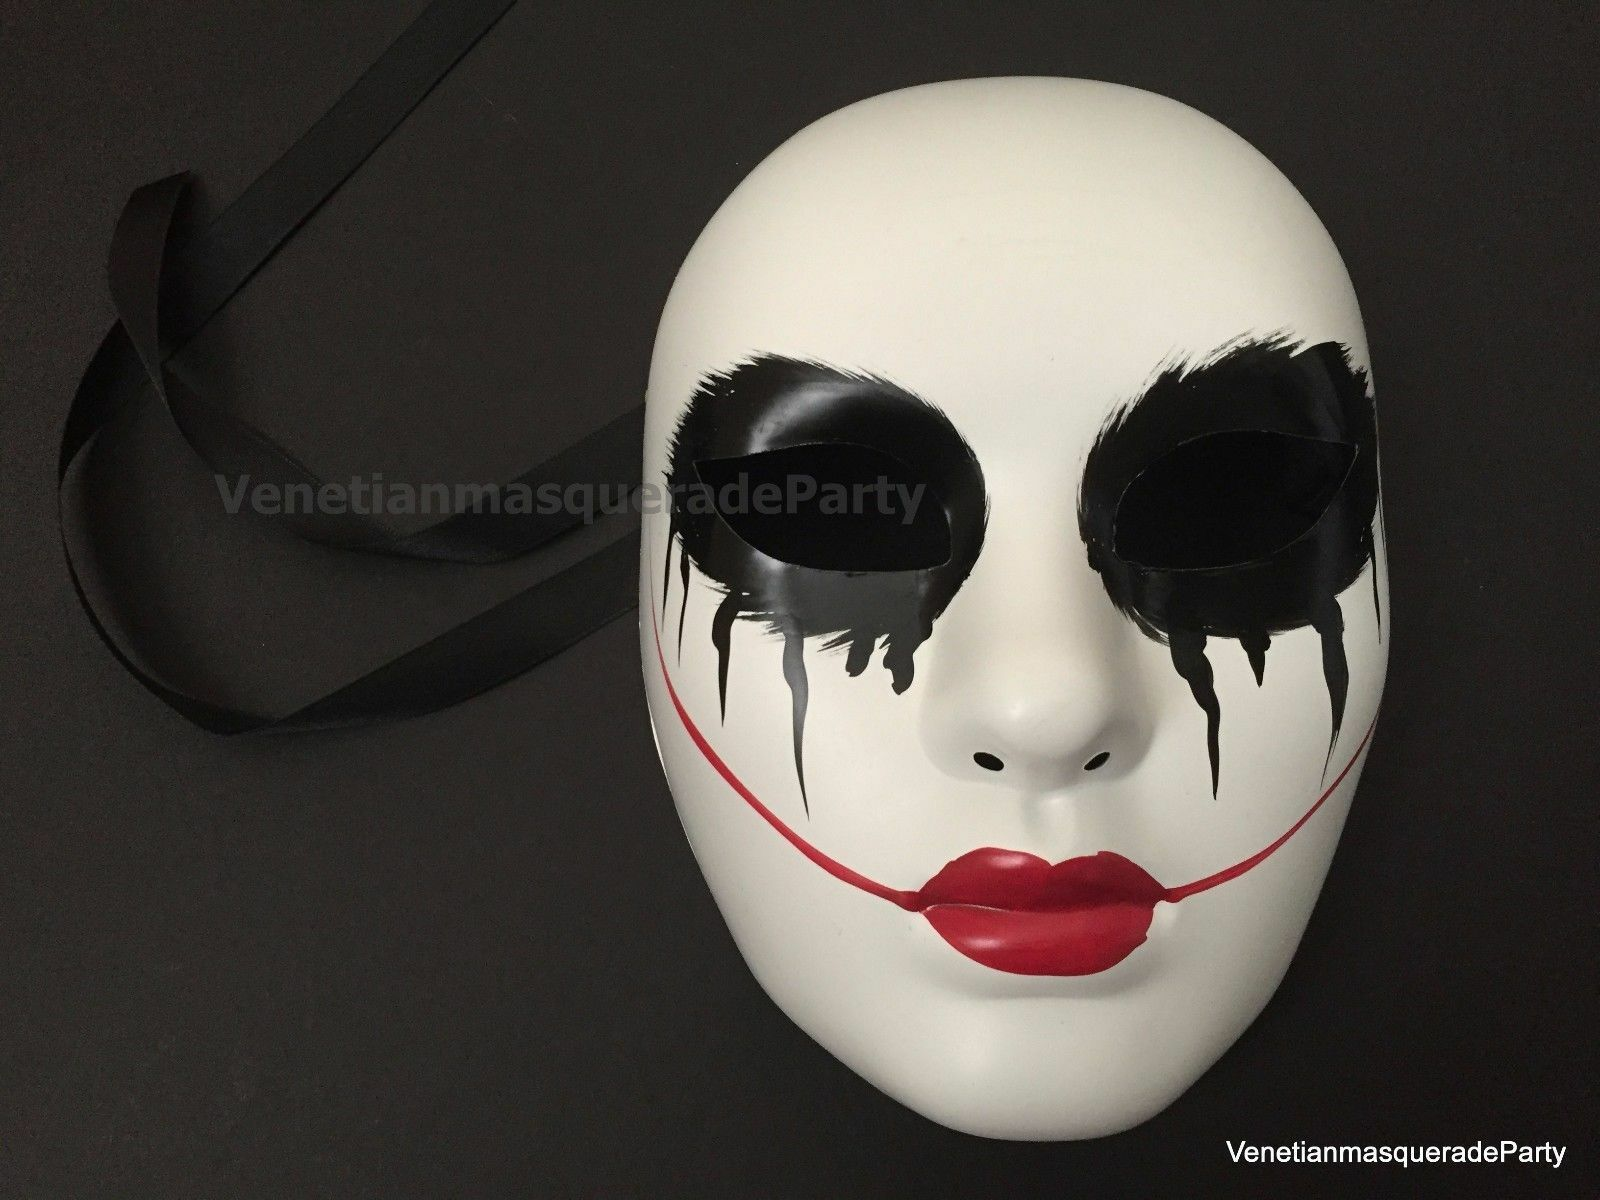 the purge red lips blood death joker mask anonymou.. in pakaian